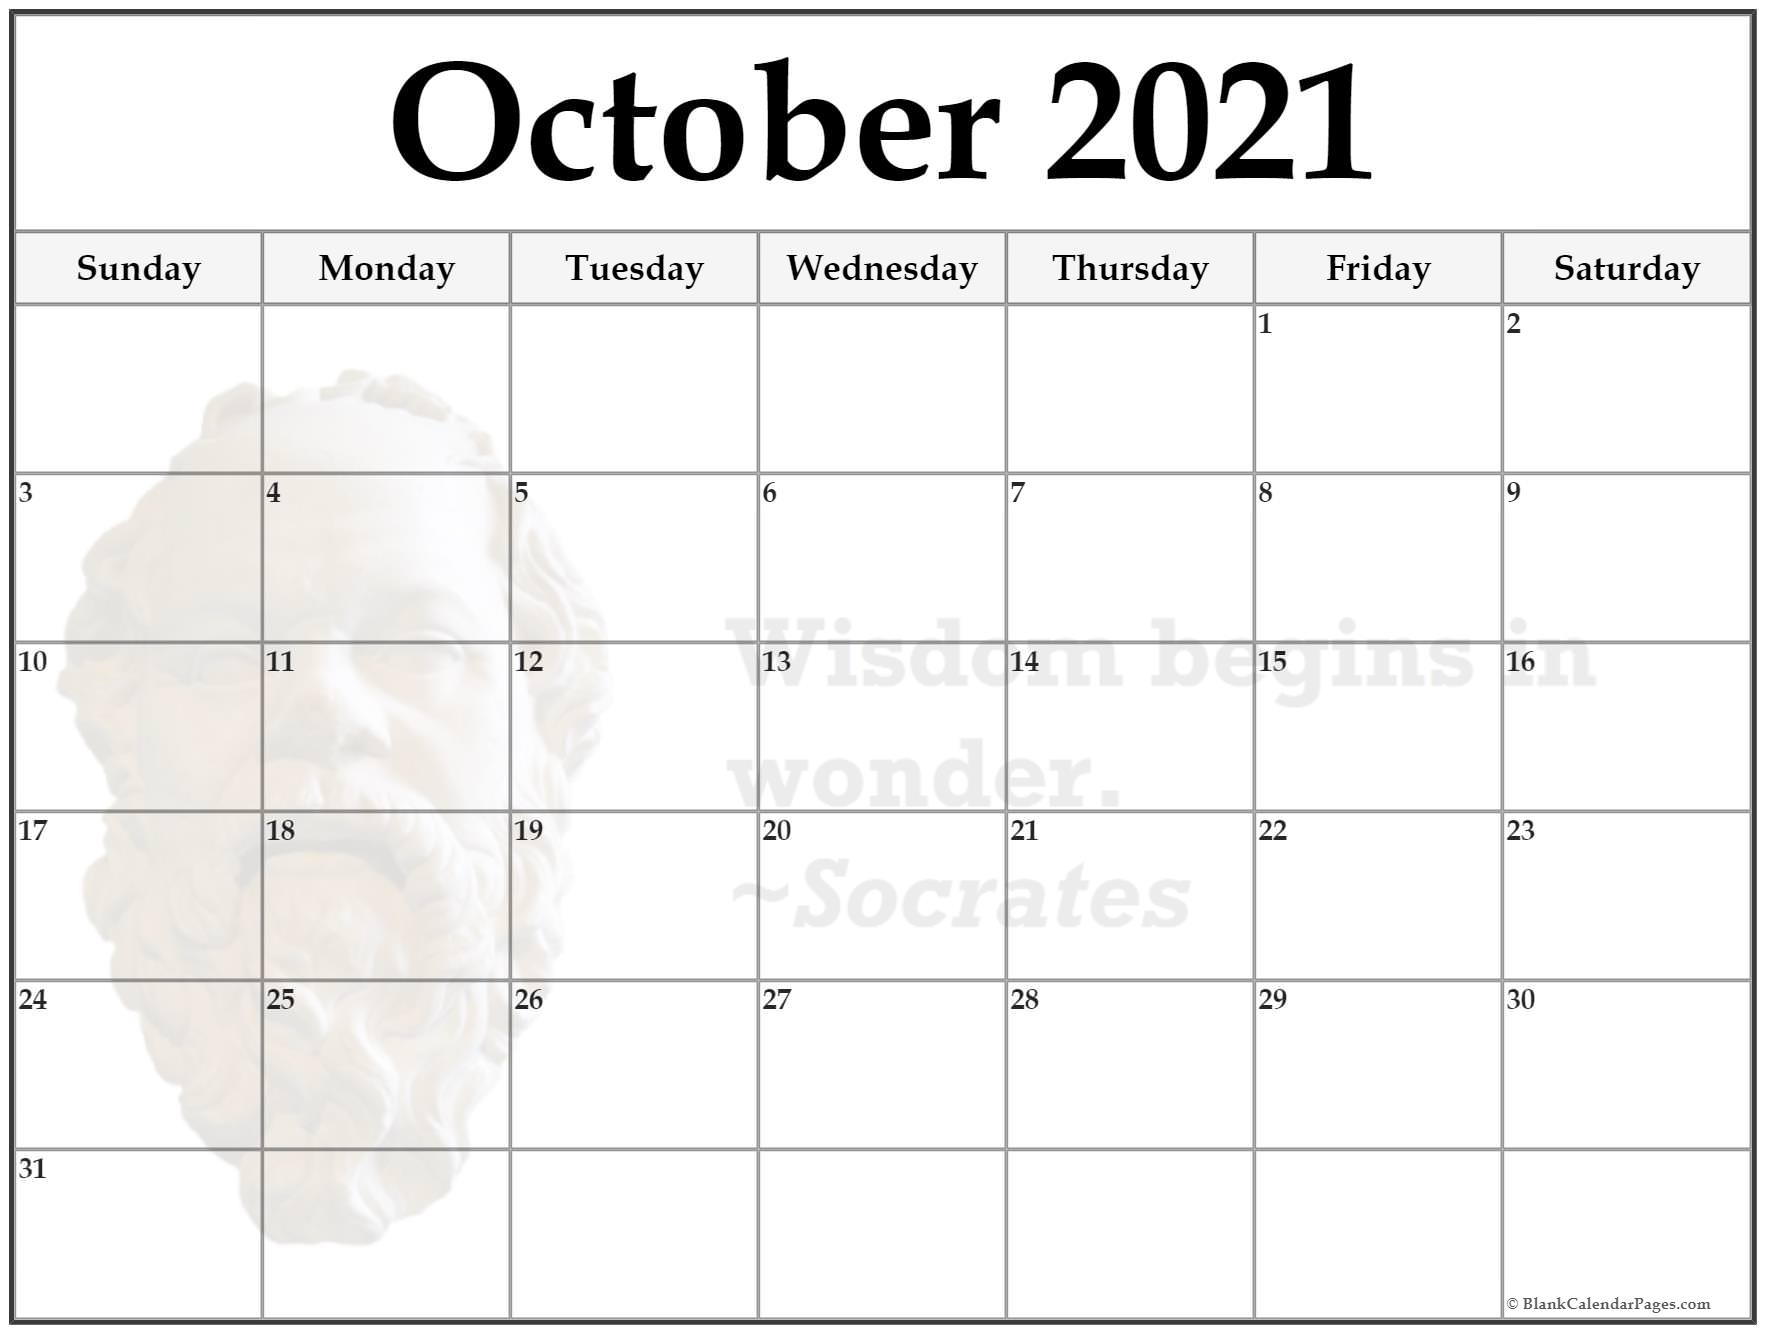 October 2020 with socrates sayings. Wisdom begins in wonder. ~Socrates